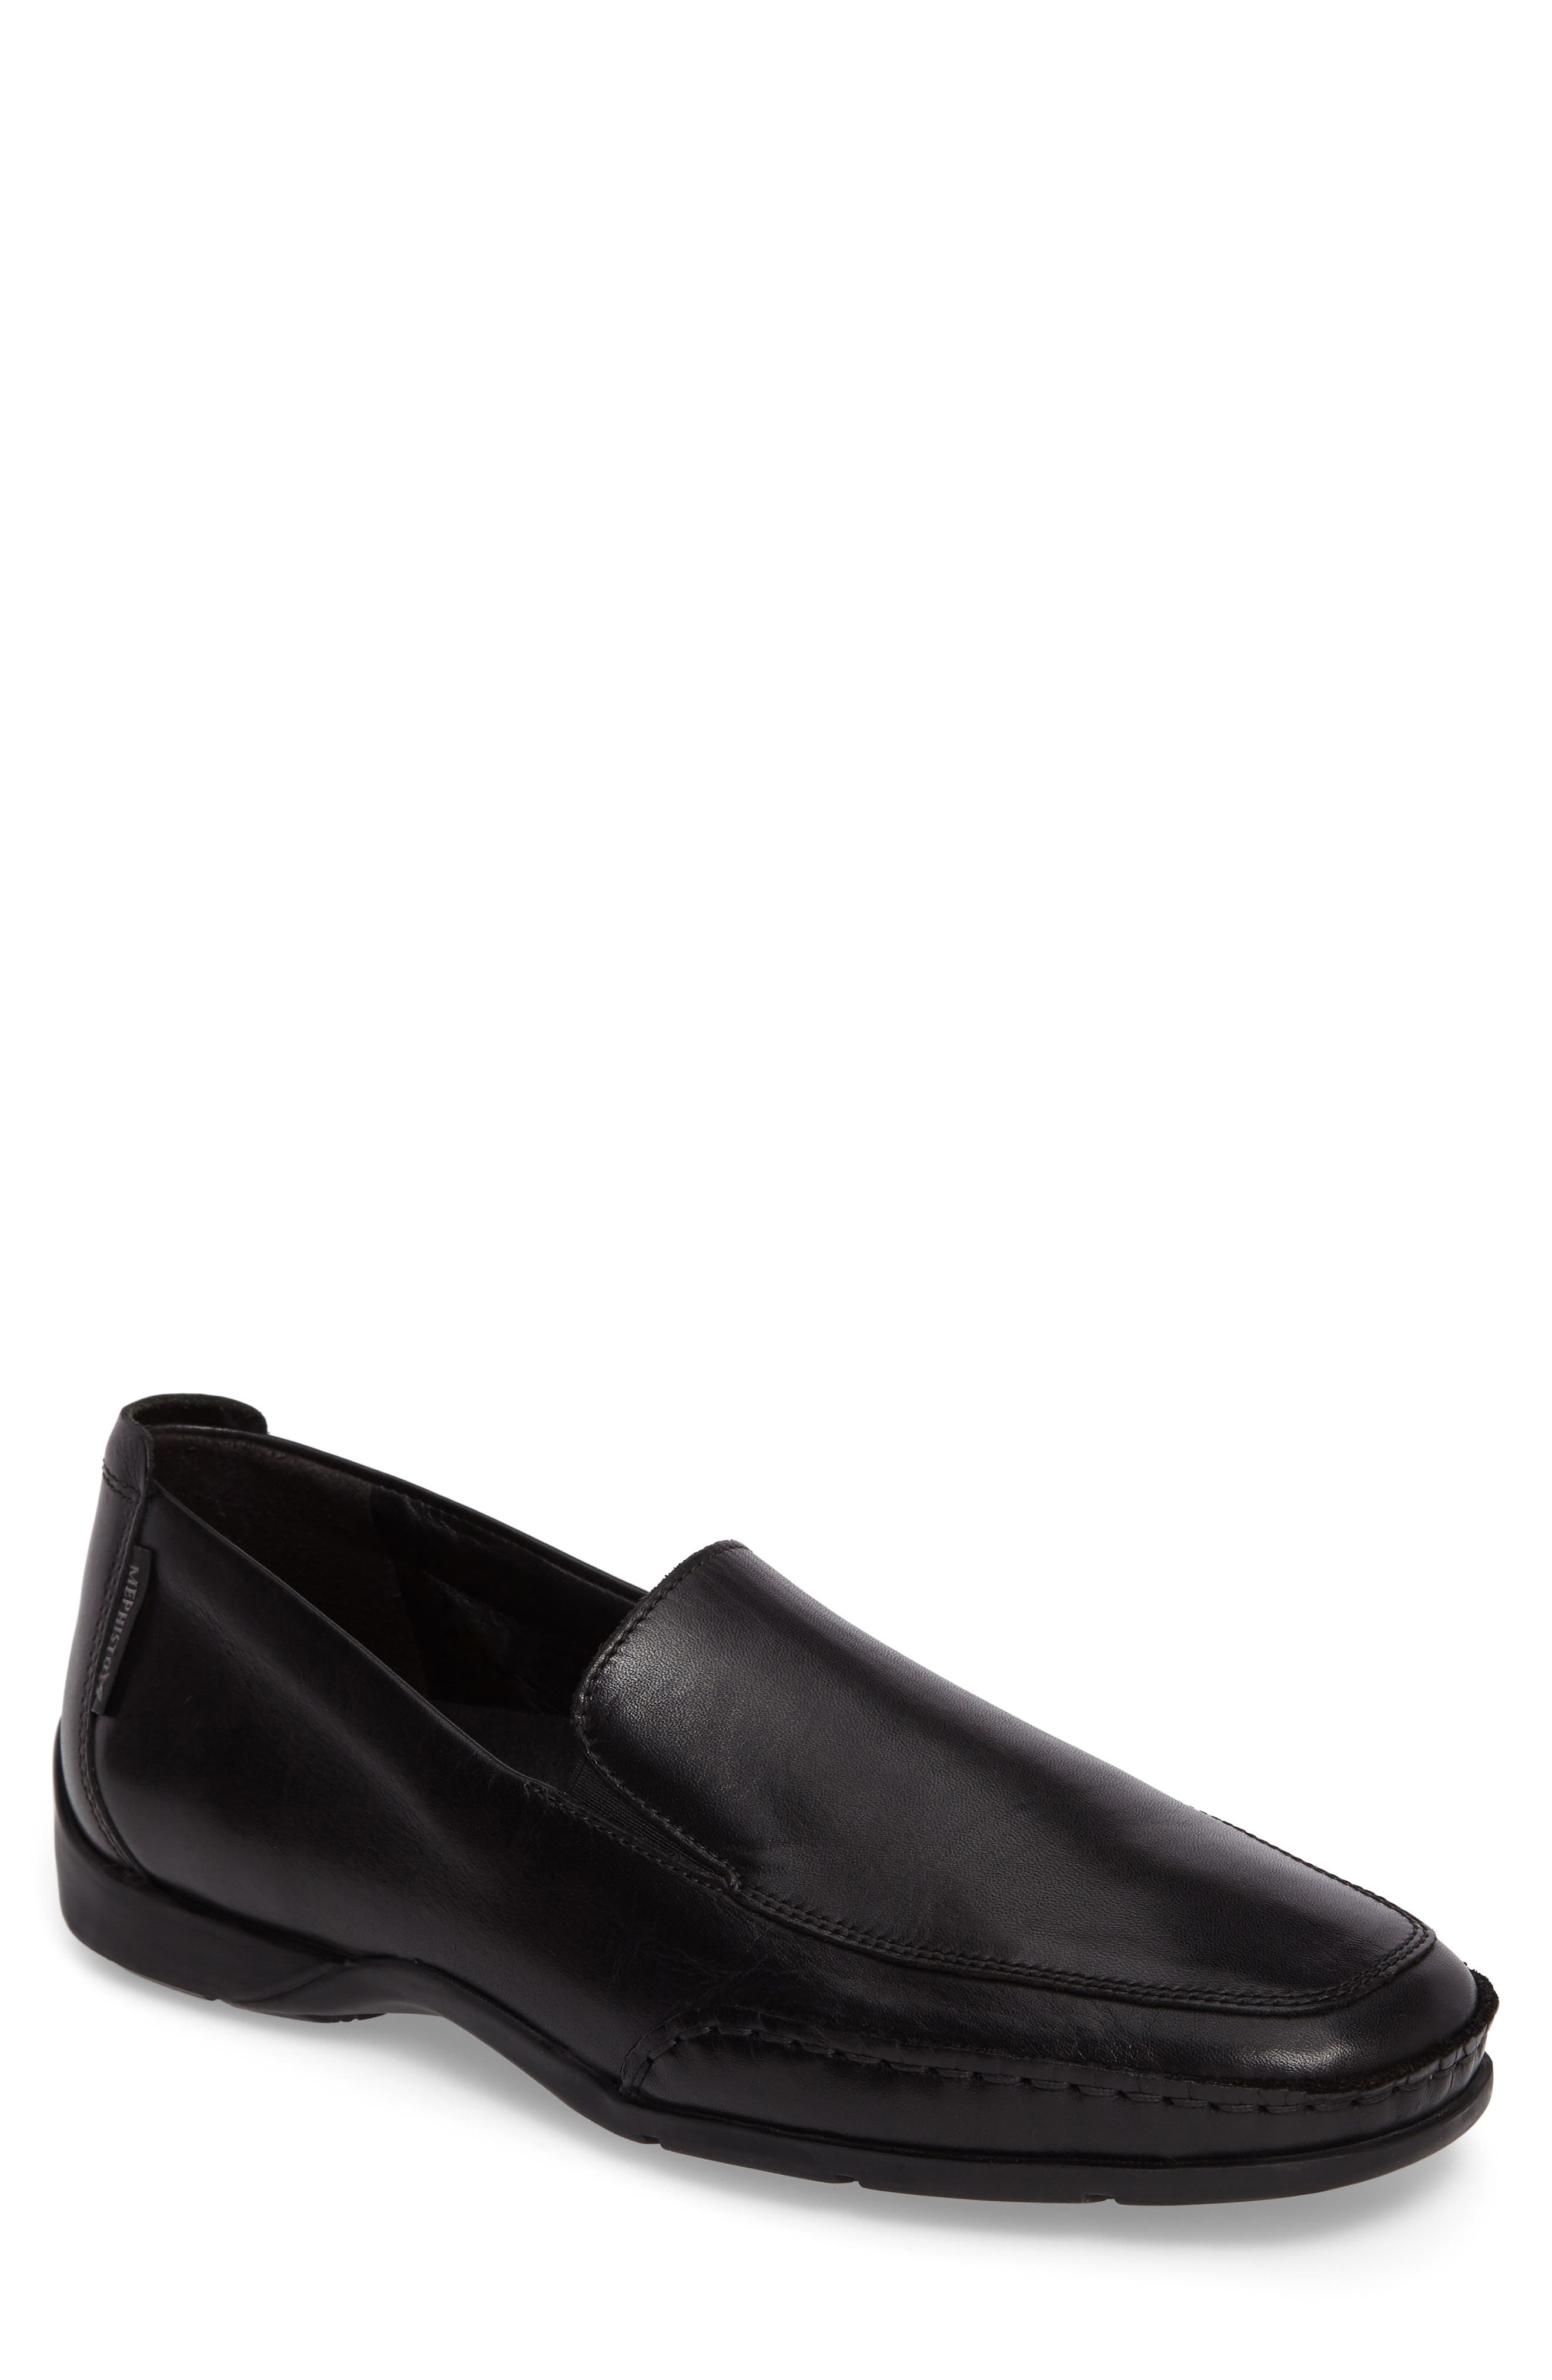 'Edlef' Slip-On, Main, color, BLACK SMOOTH LEATHER